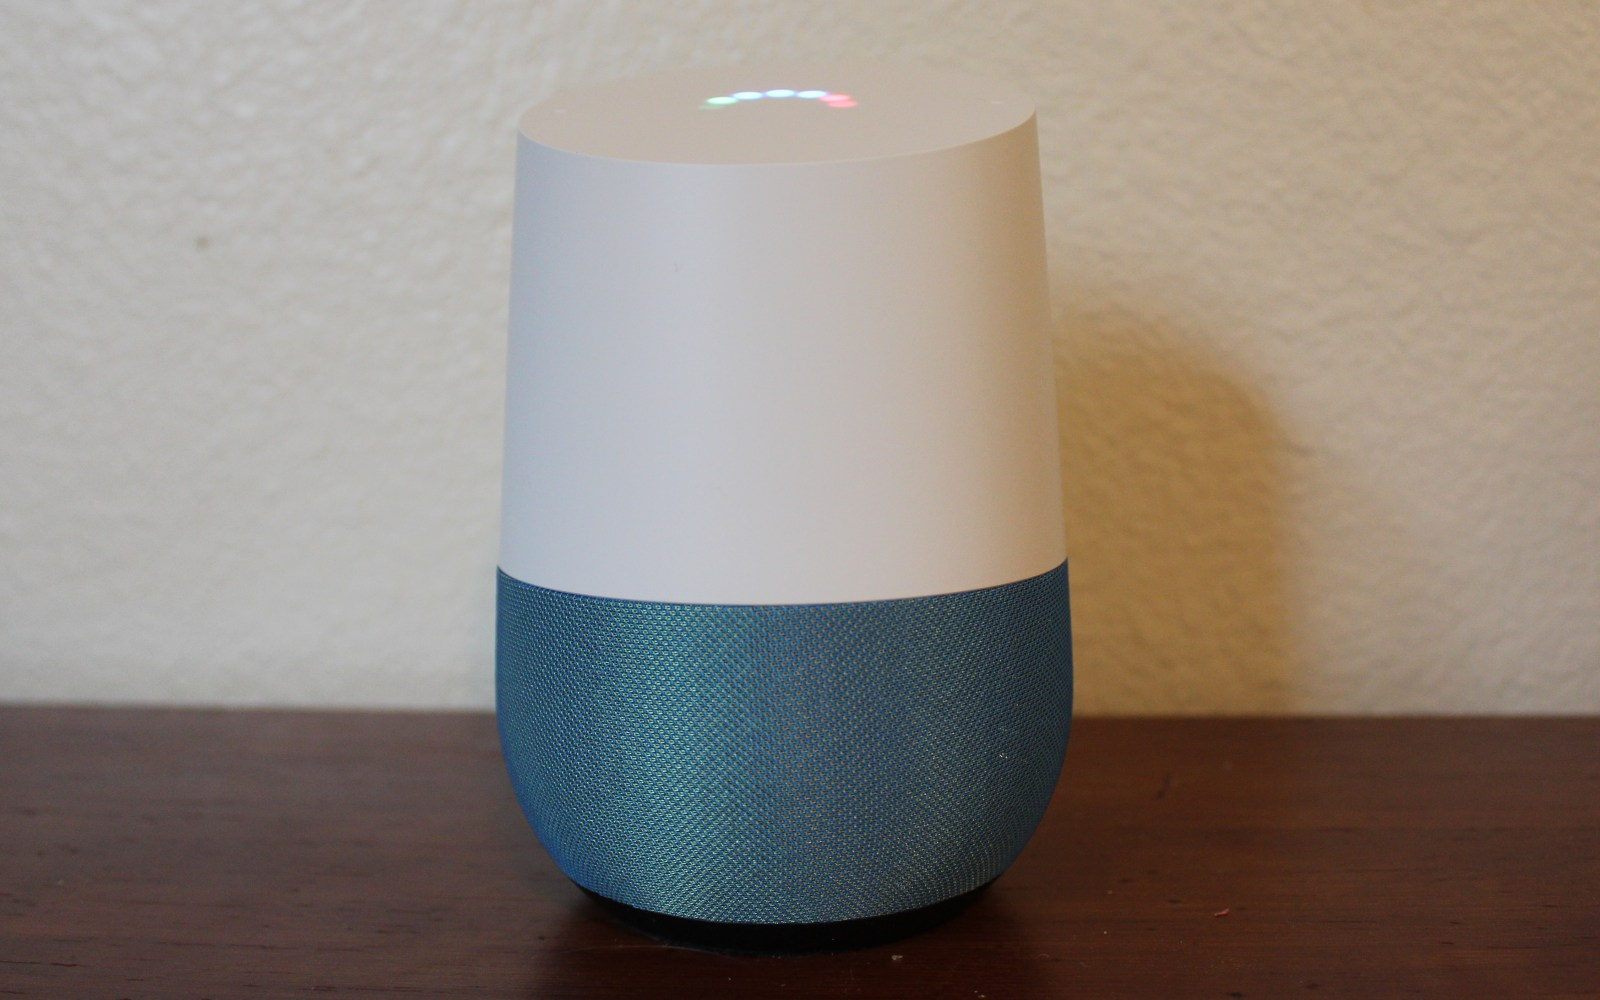 Google Home Review: A solid start, but not yet as capable as its Echo archenemy [Video]